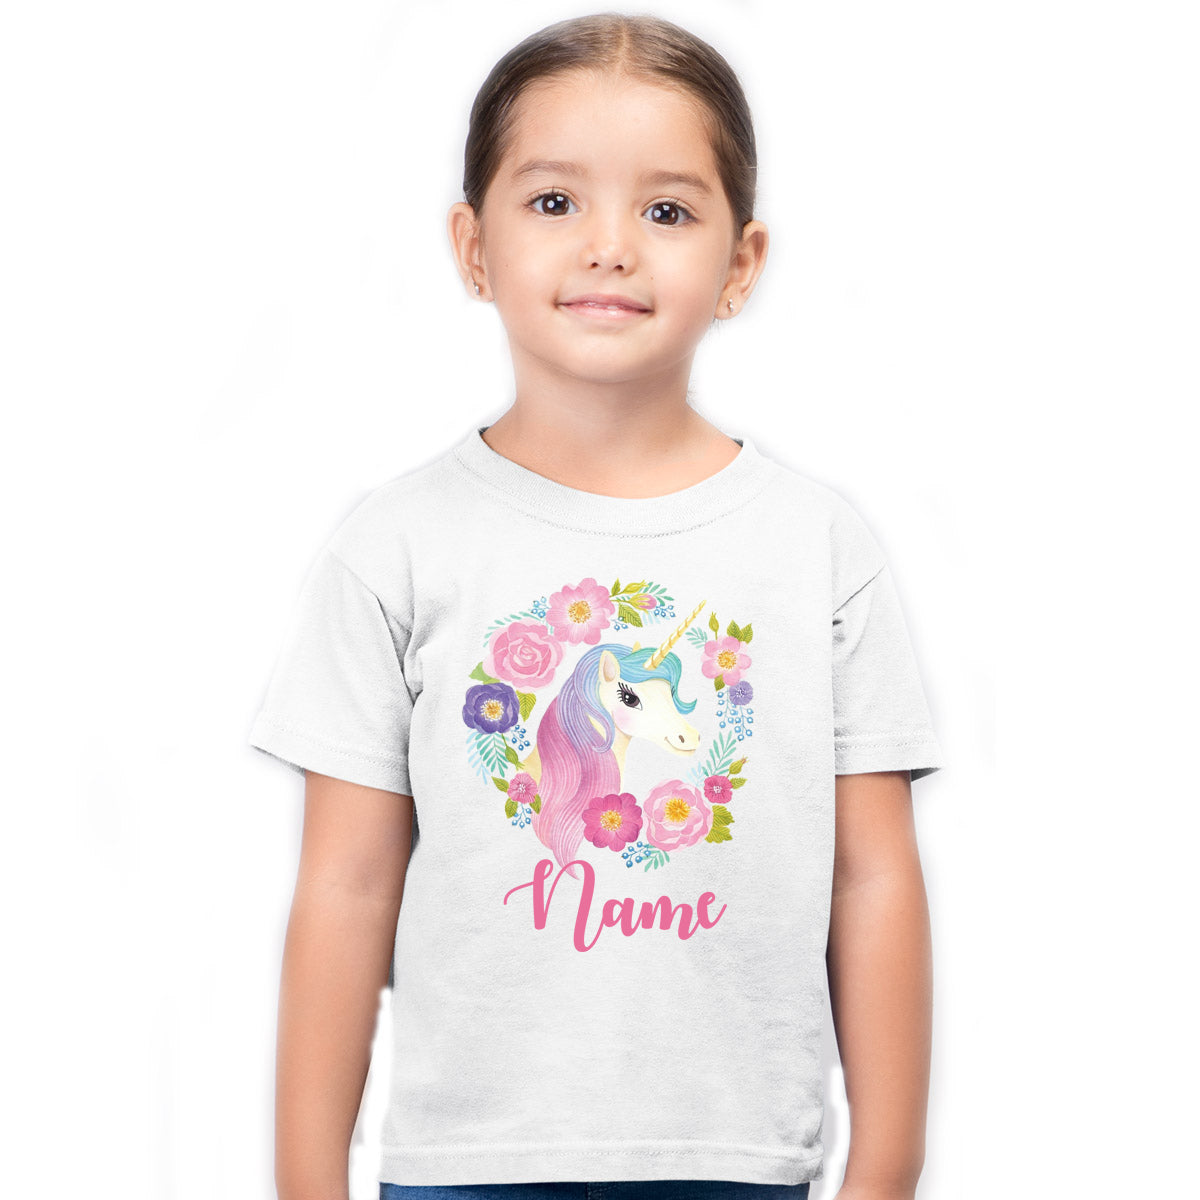 Sprinklecart Custom Name Printed Cute Unicorn Poly-Cotton T Shirt for Kids (White)